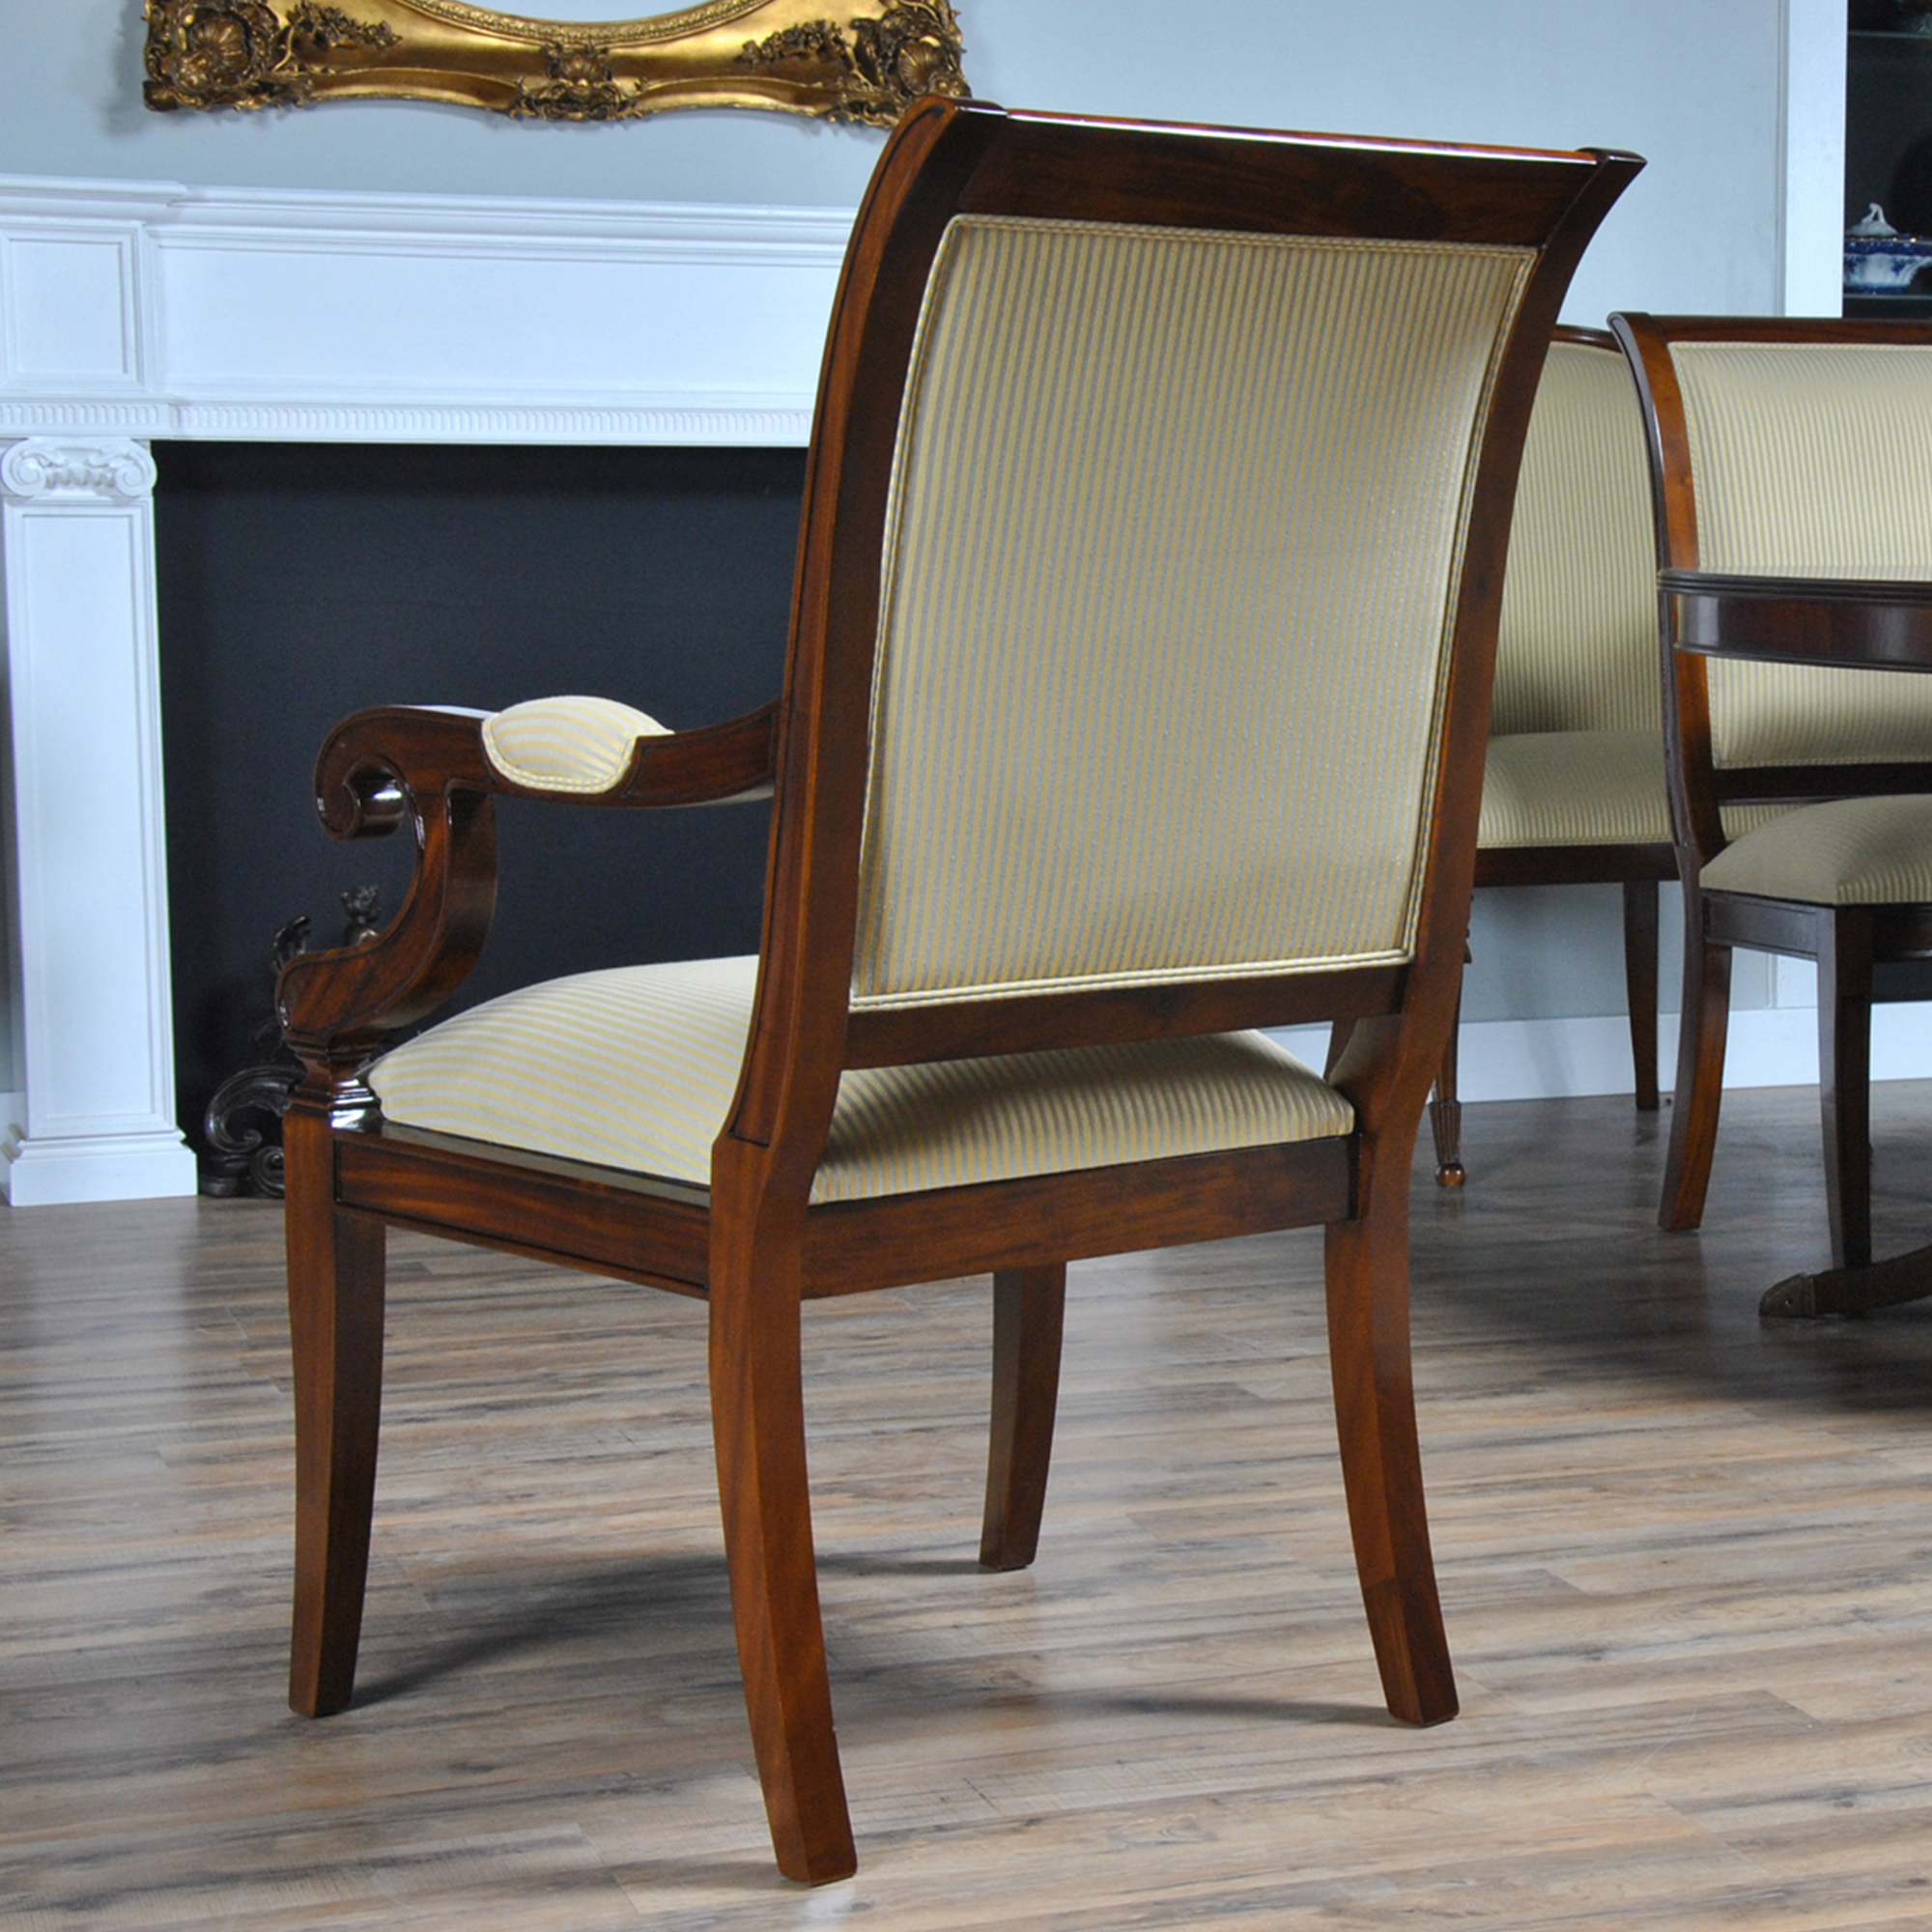 Upholstered Dining Room Chair: Regency Upholstered Dining Chair :: NDRAC056